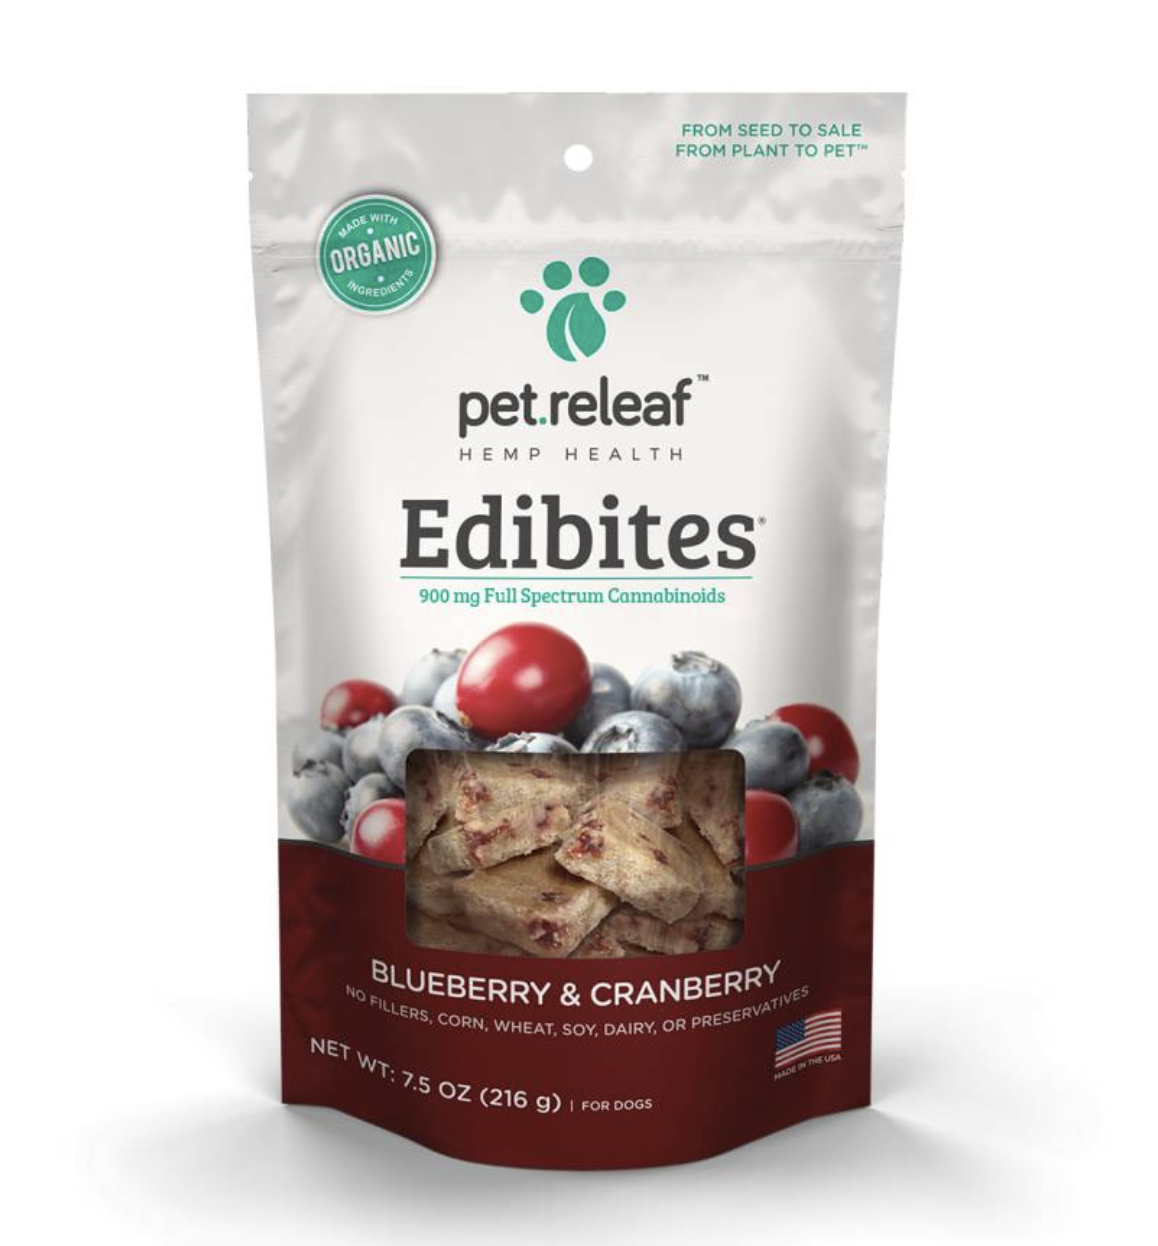 Pet Releaf Edibites - Blueberry & Cranberry